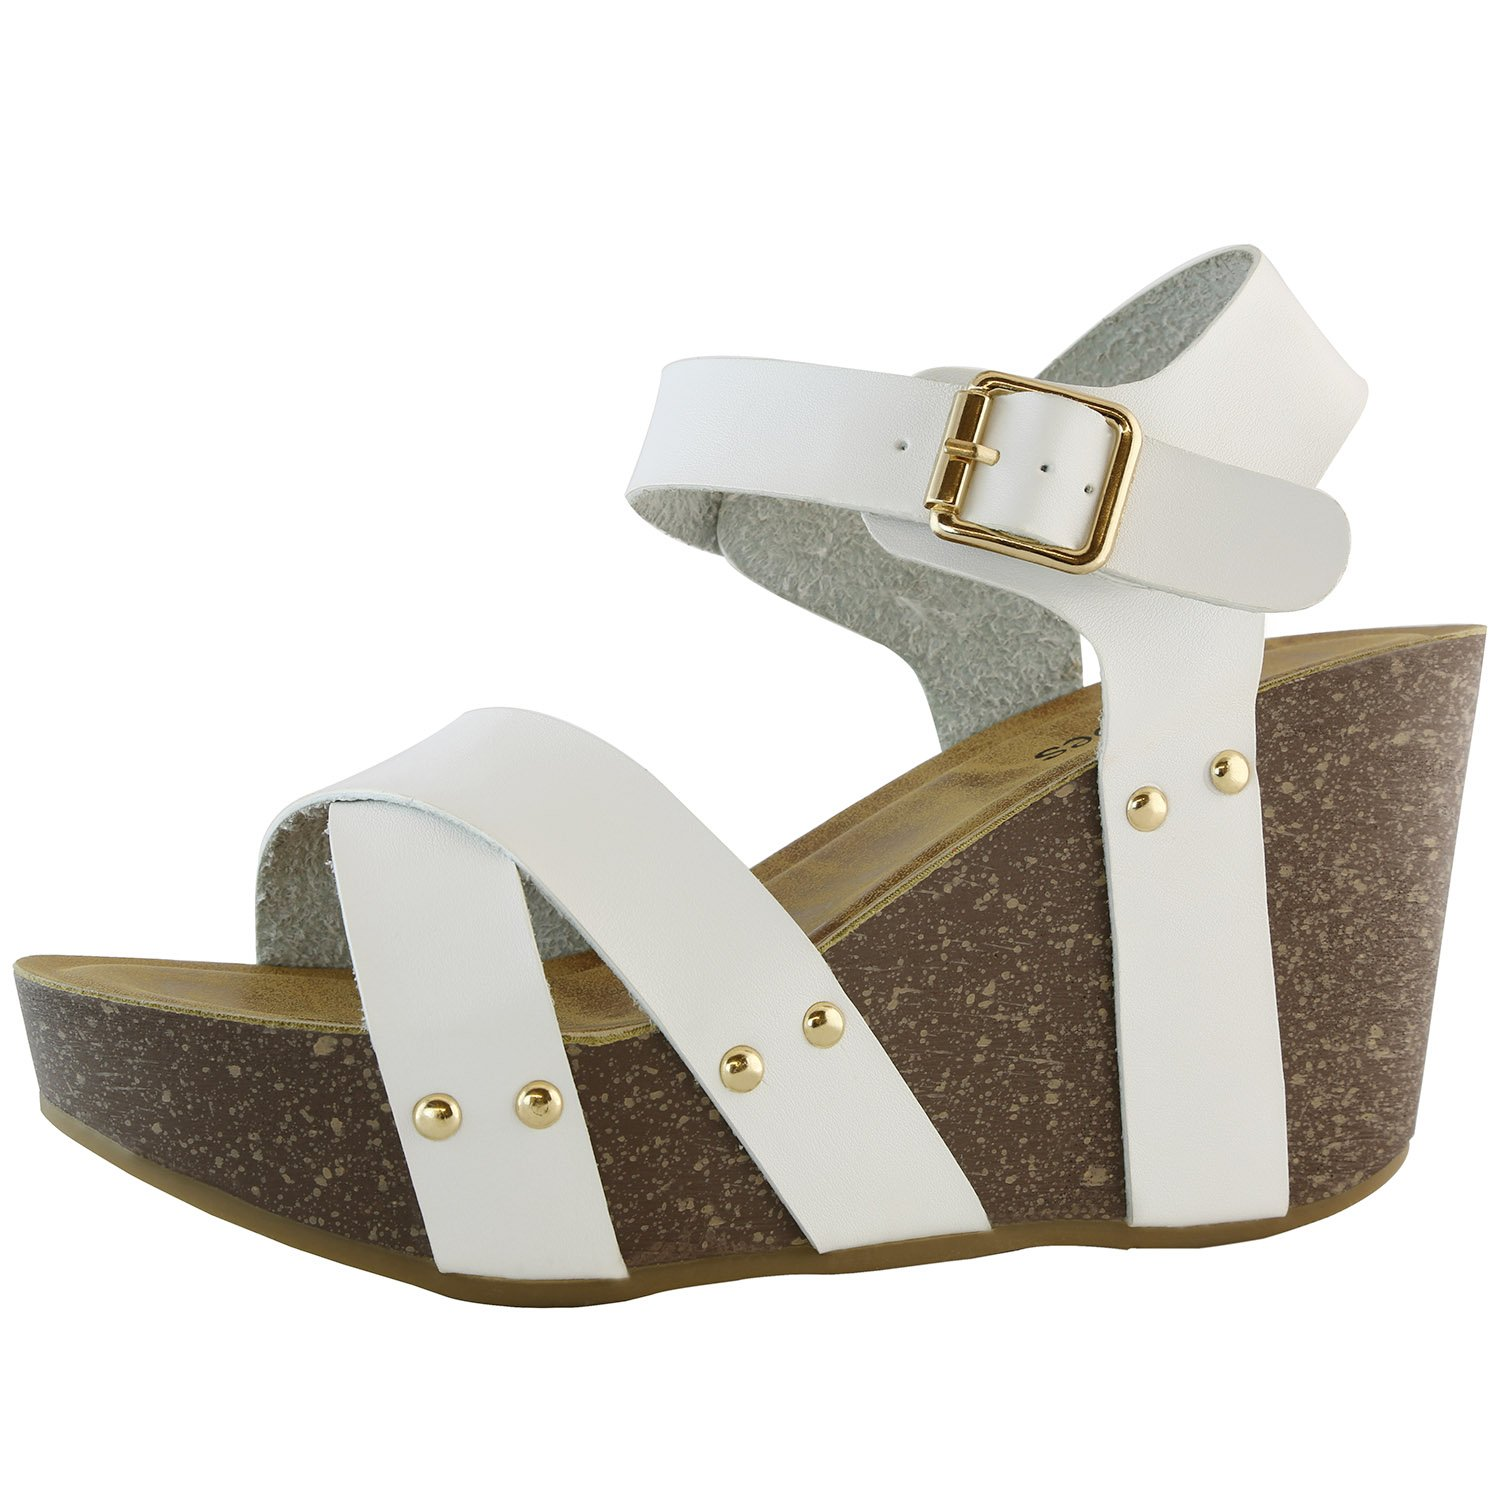 DailyShoes Chunky Slide On Wedge Heels High Wedges Sandal Ankle Strap Open Toe Platform Sandals Comfort Thick Cork Buckle Summer Shoes